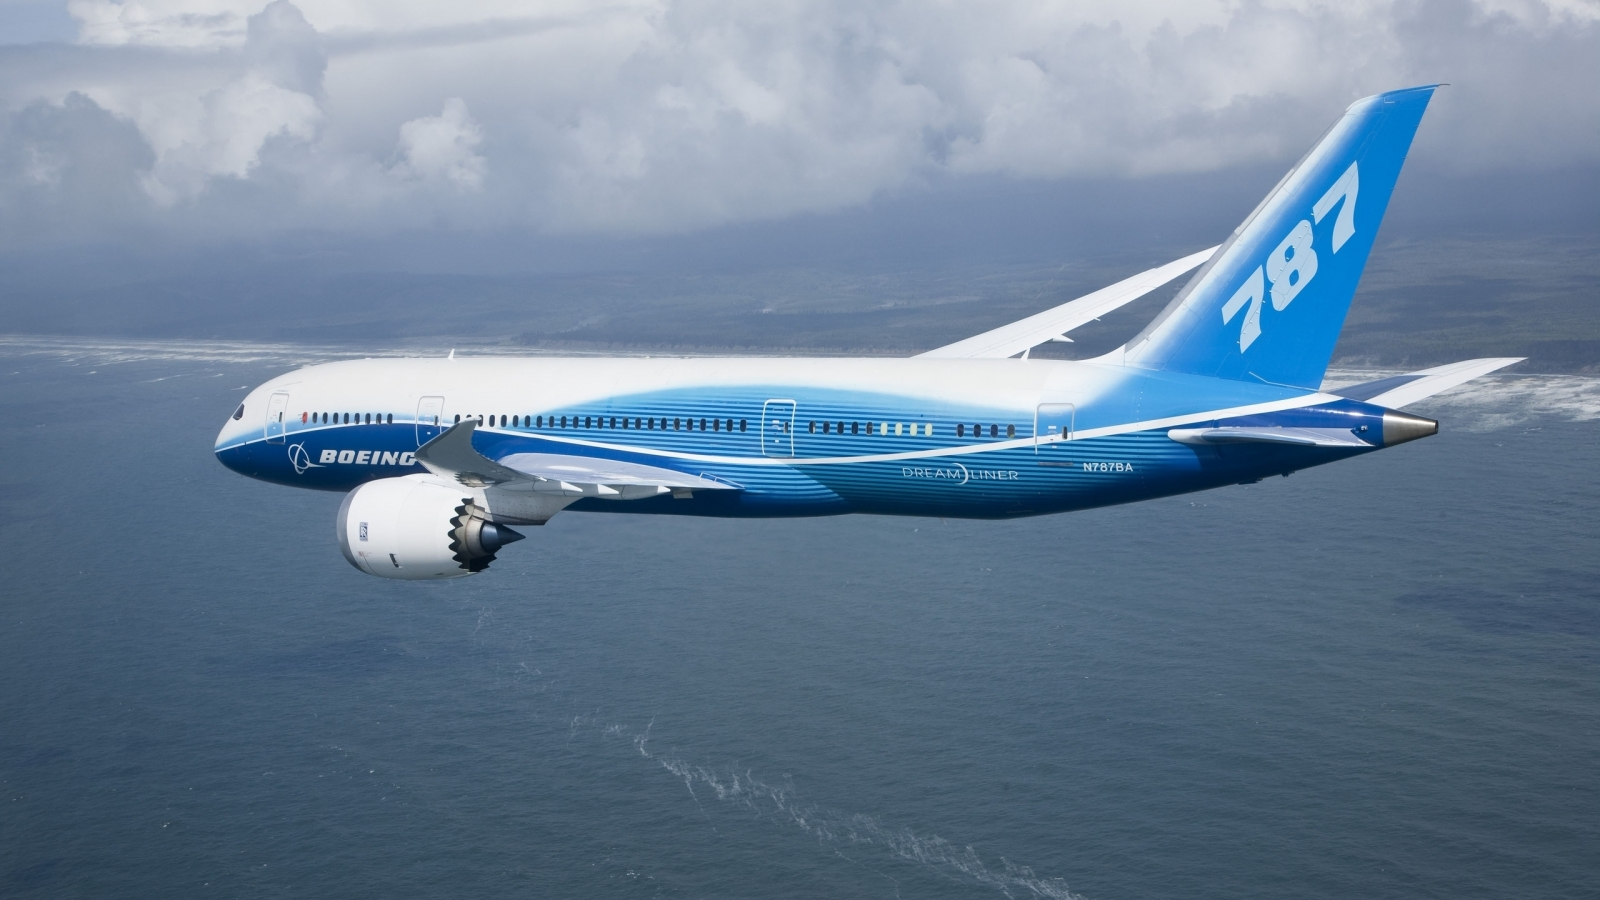 Boeing 787 Flying for 1600 x 900 HDTV resolution